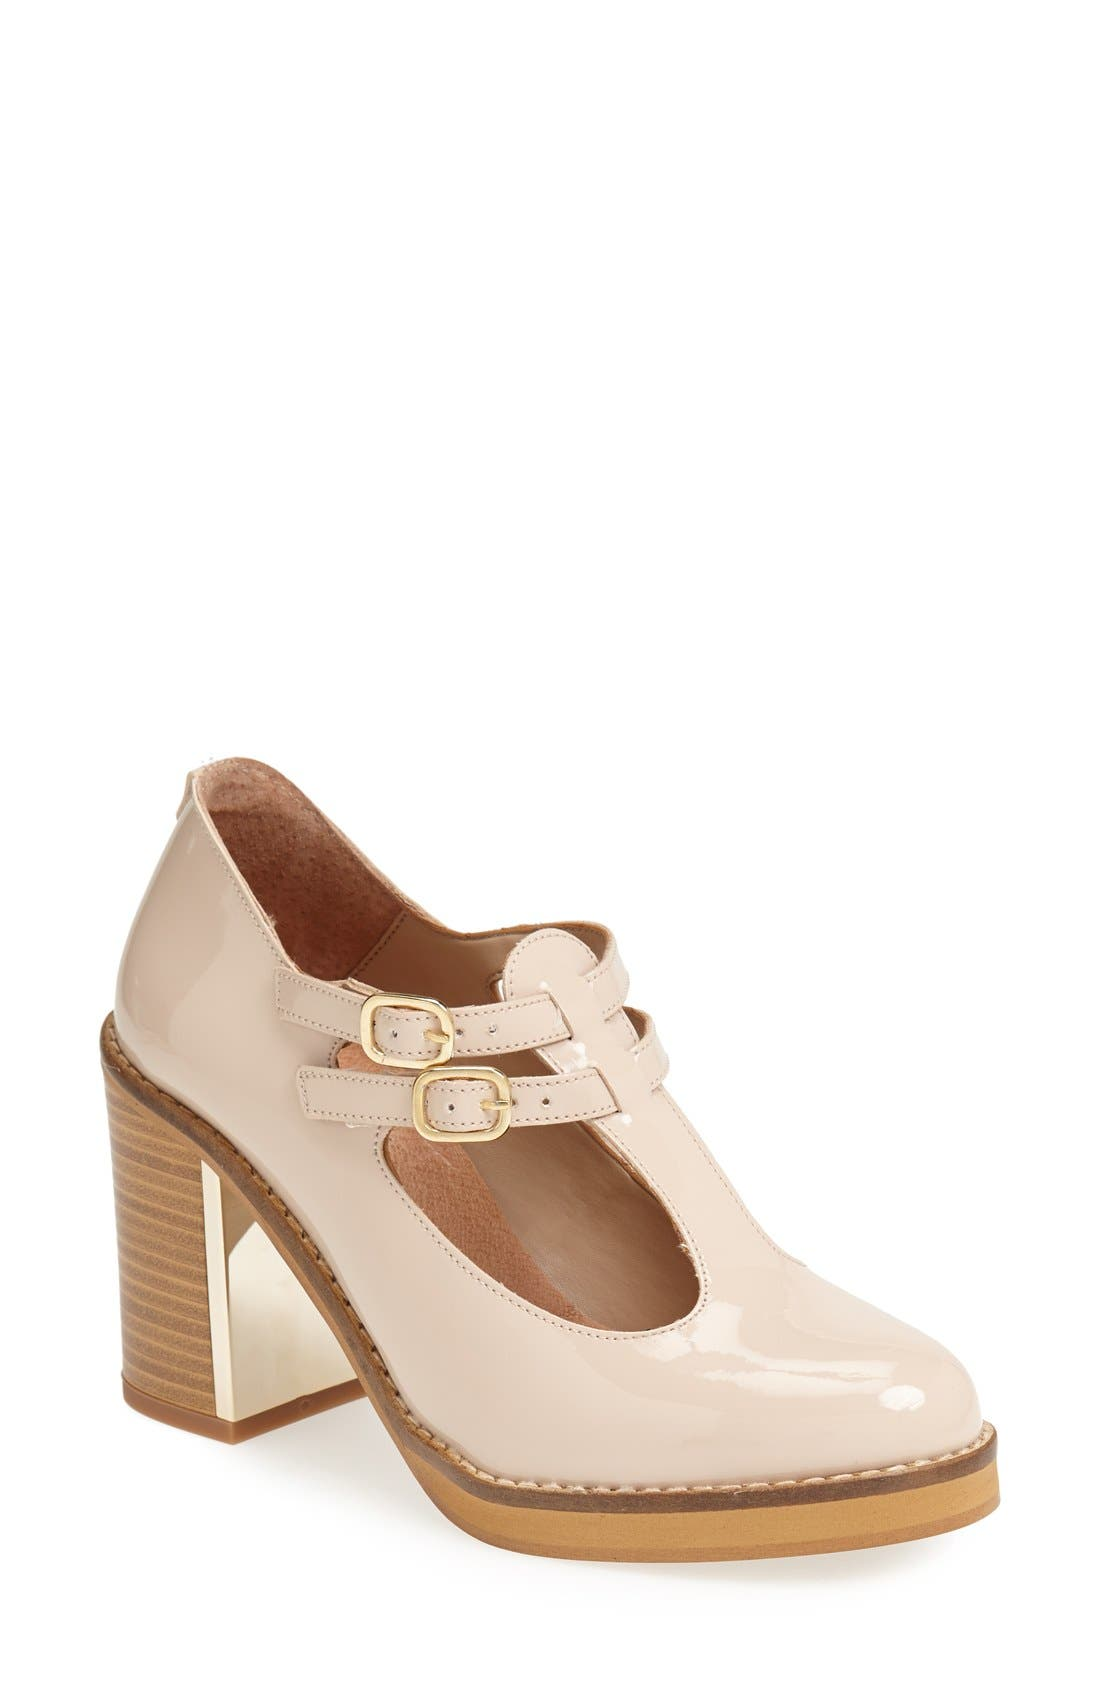 Main Image - Topshop 'Gess' Mary Jane T-Strap Pump (Women)